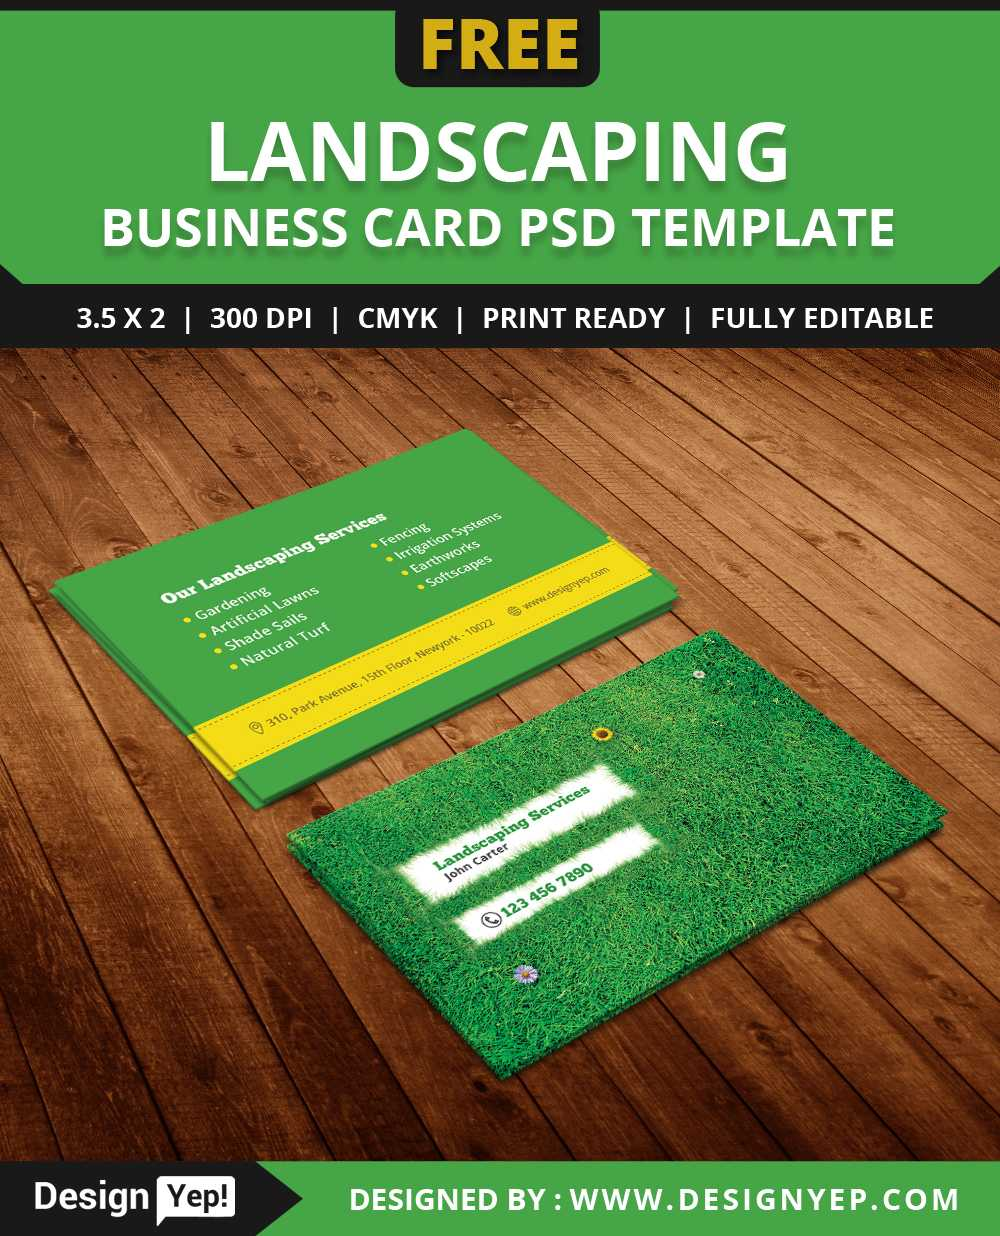 Free Landscaping Business Card Template Psd – Designyep With Landscaping Business Card Template